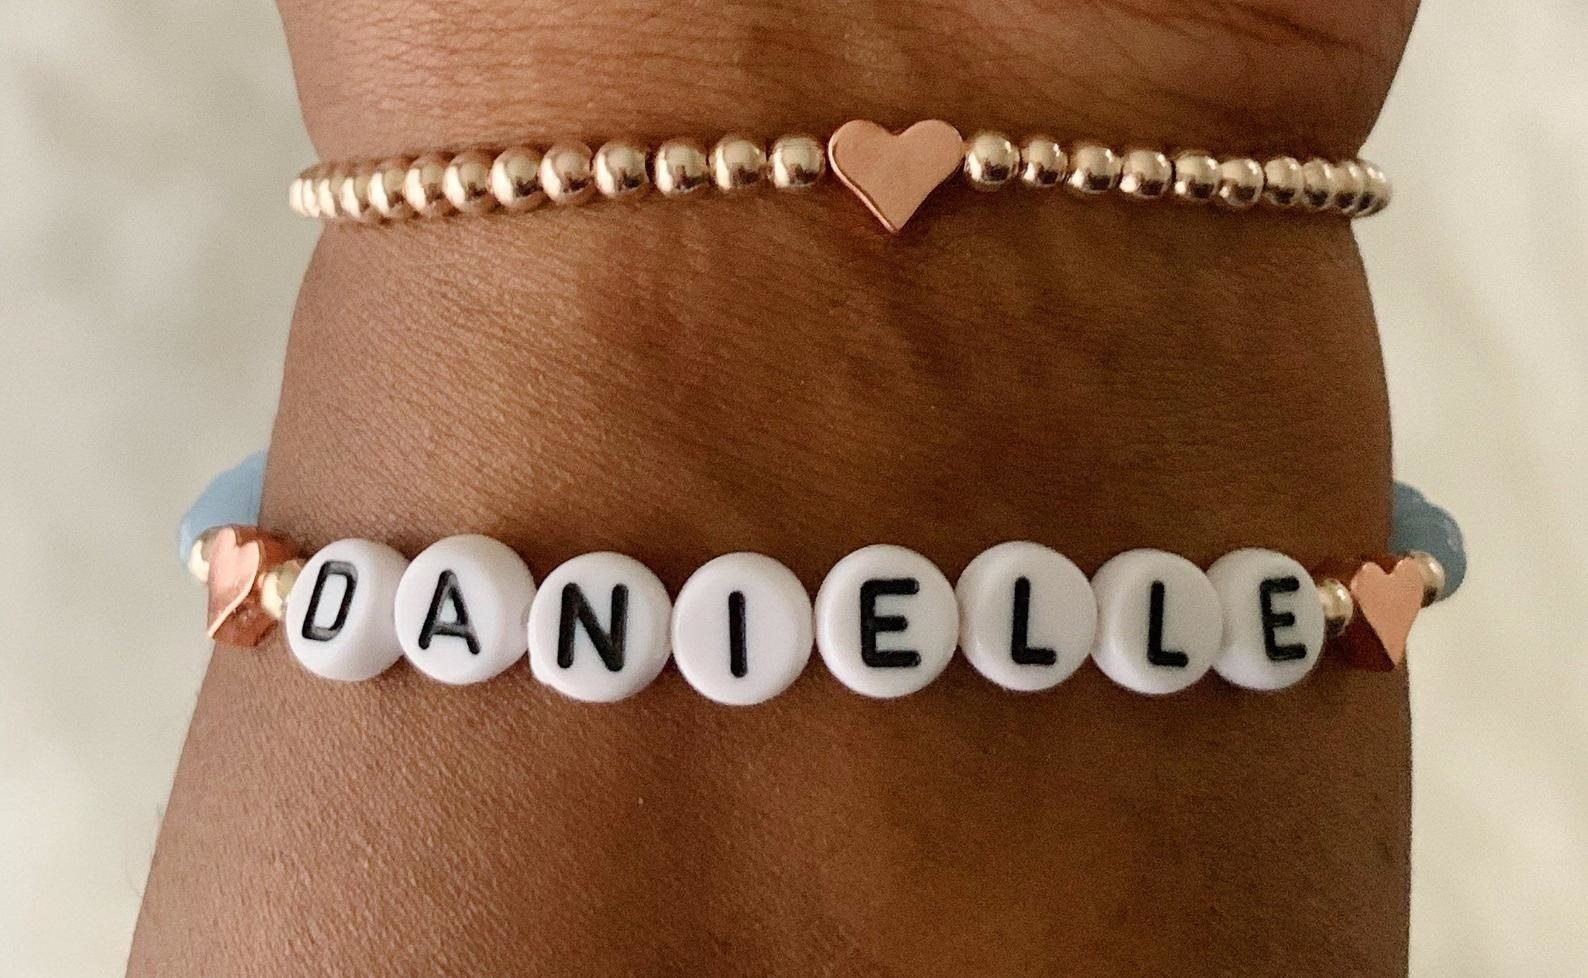 a wrist with a beaded bracelet that spells out danielle